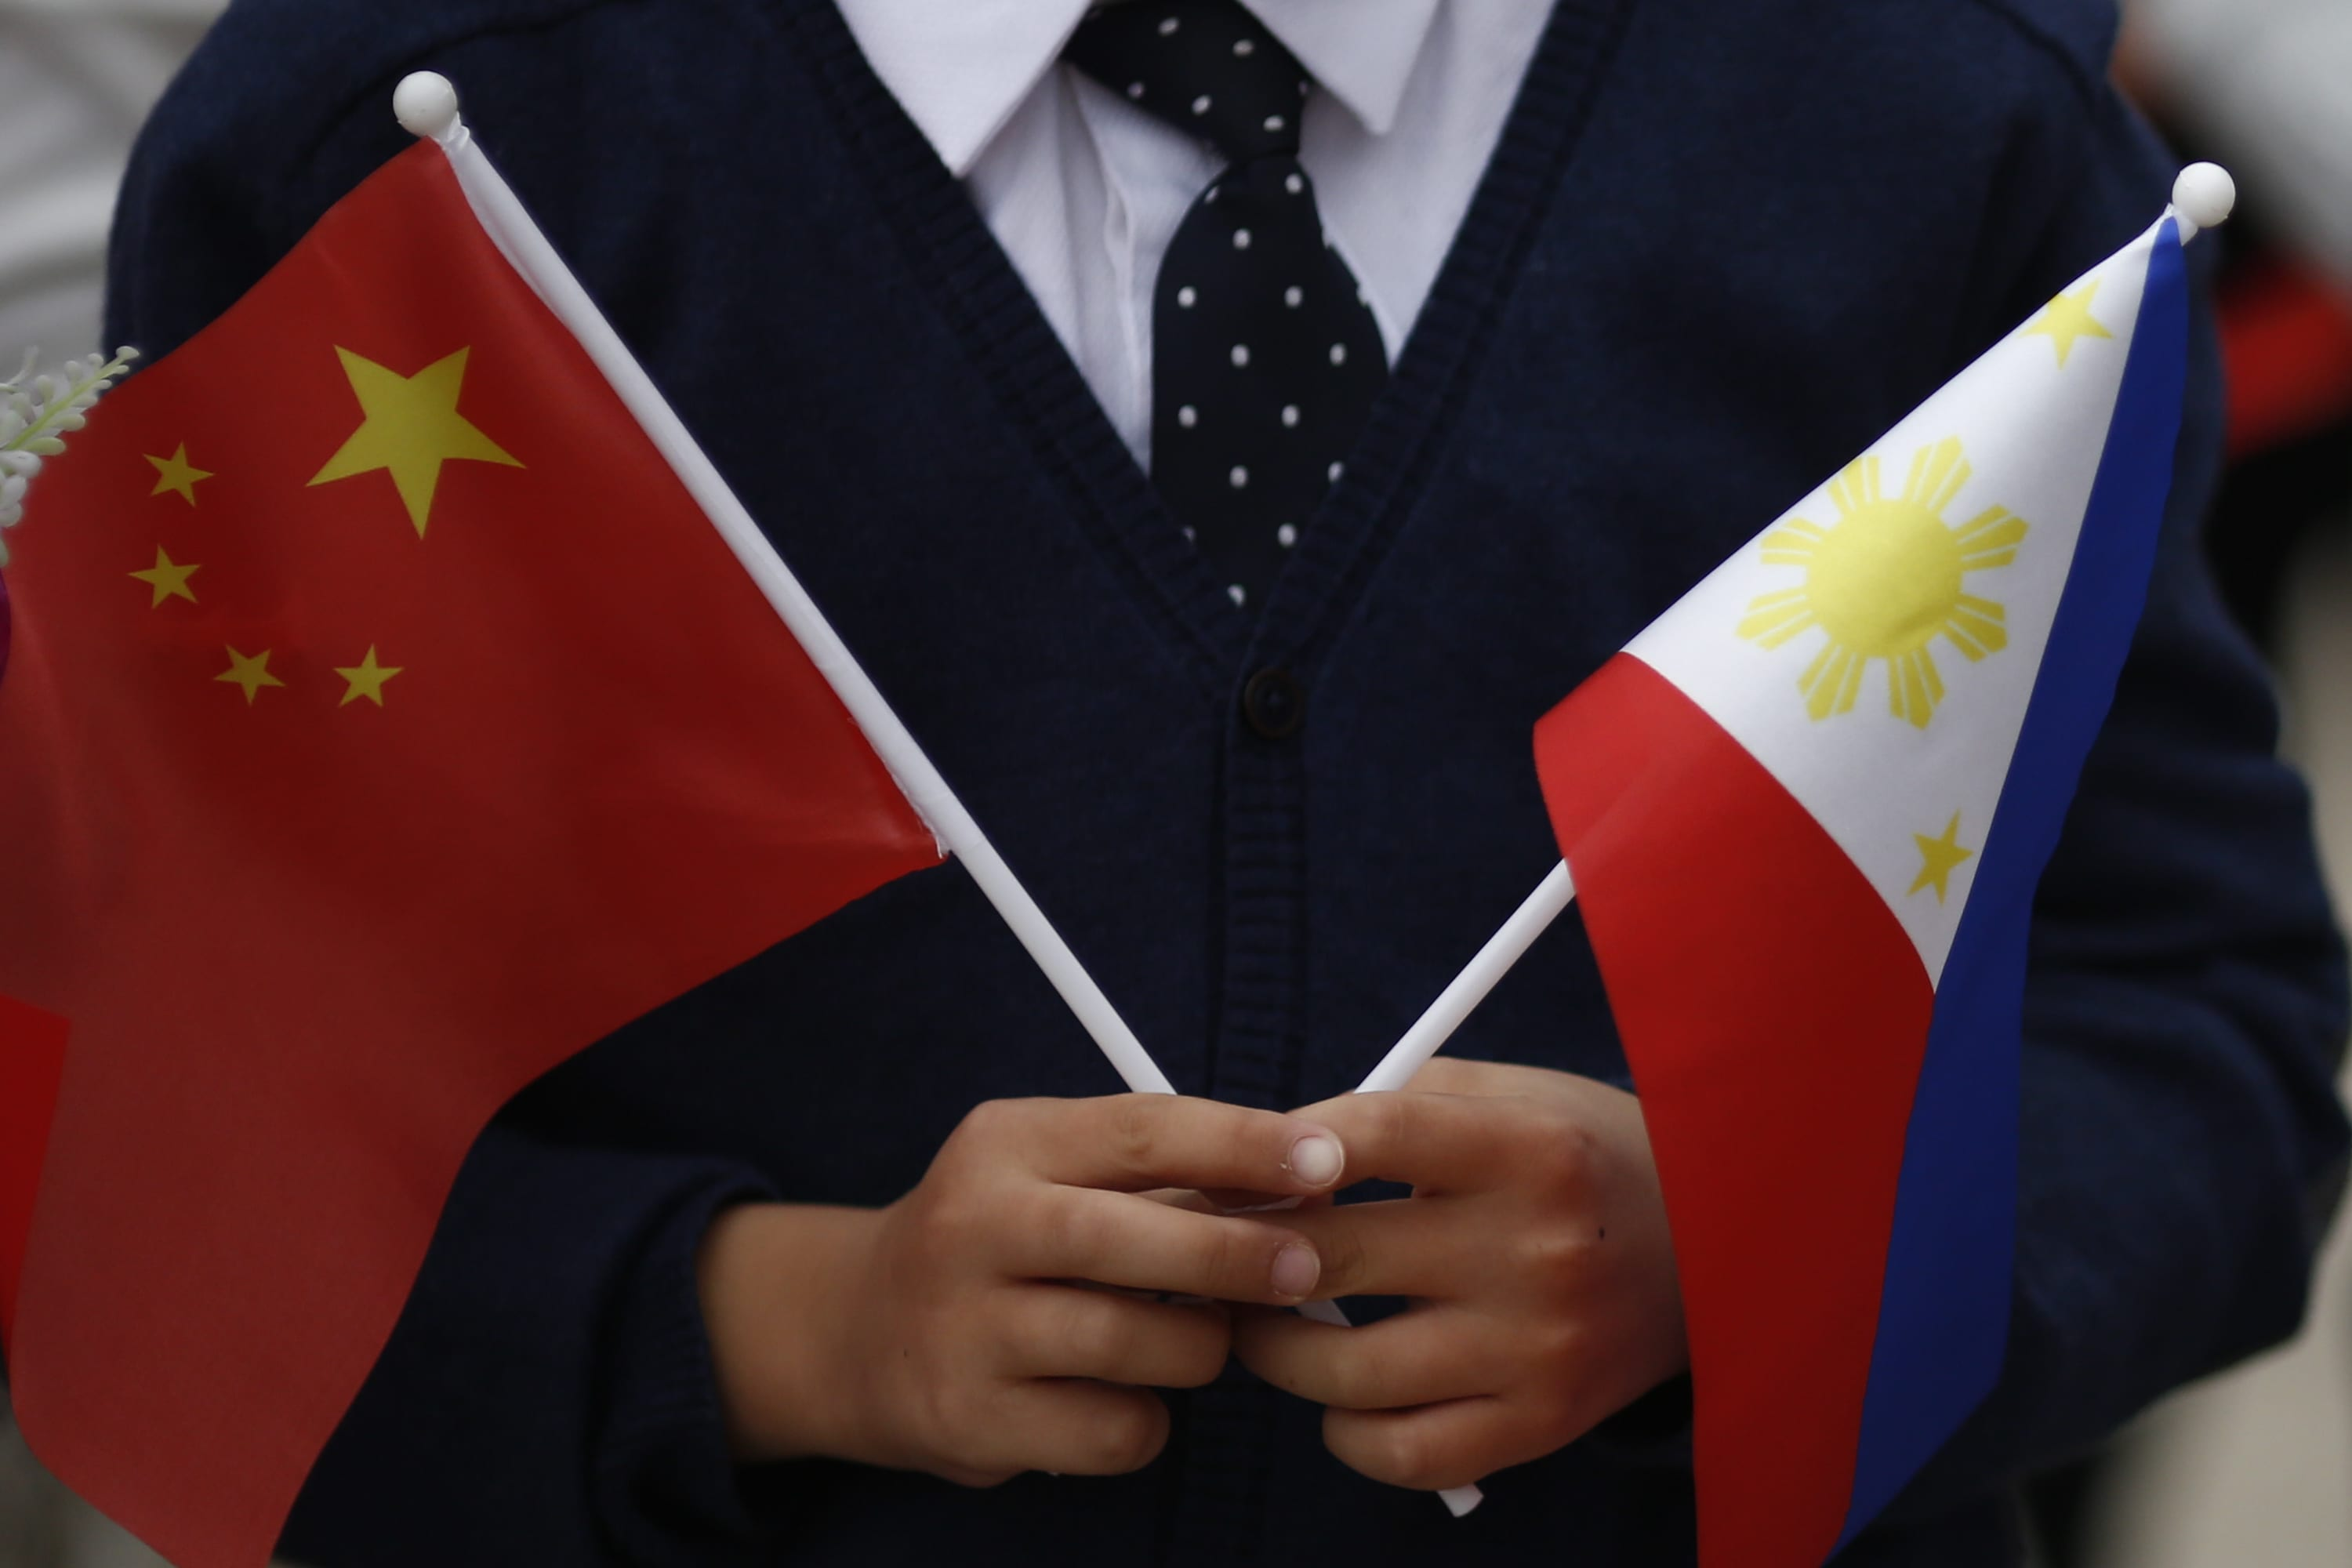 Beijing urges 'basic manners' after blunt Philippines tweet over South China Sea